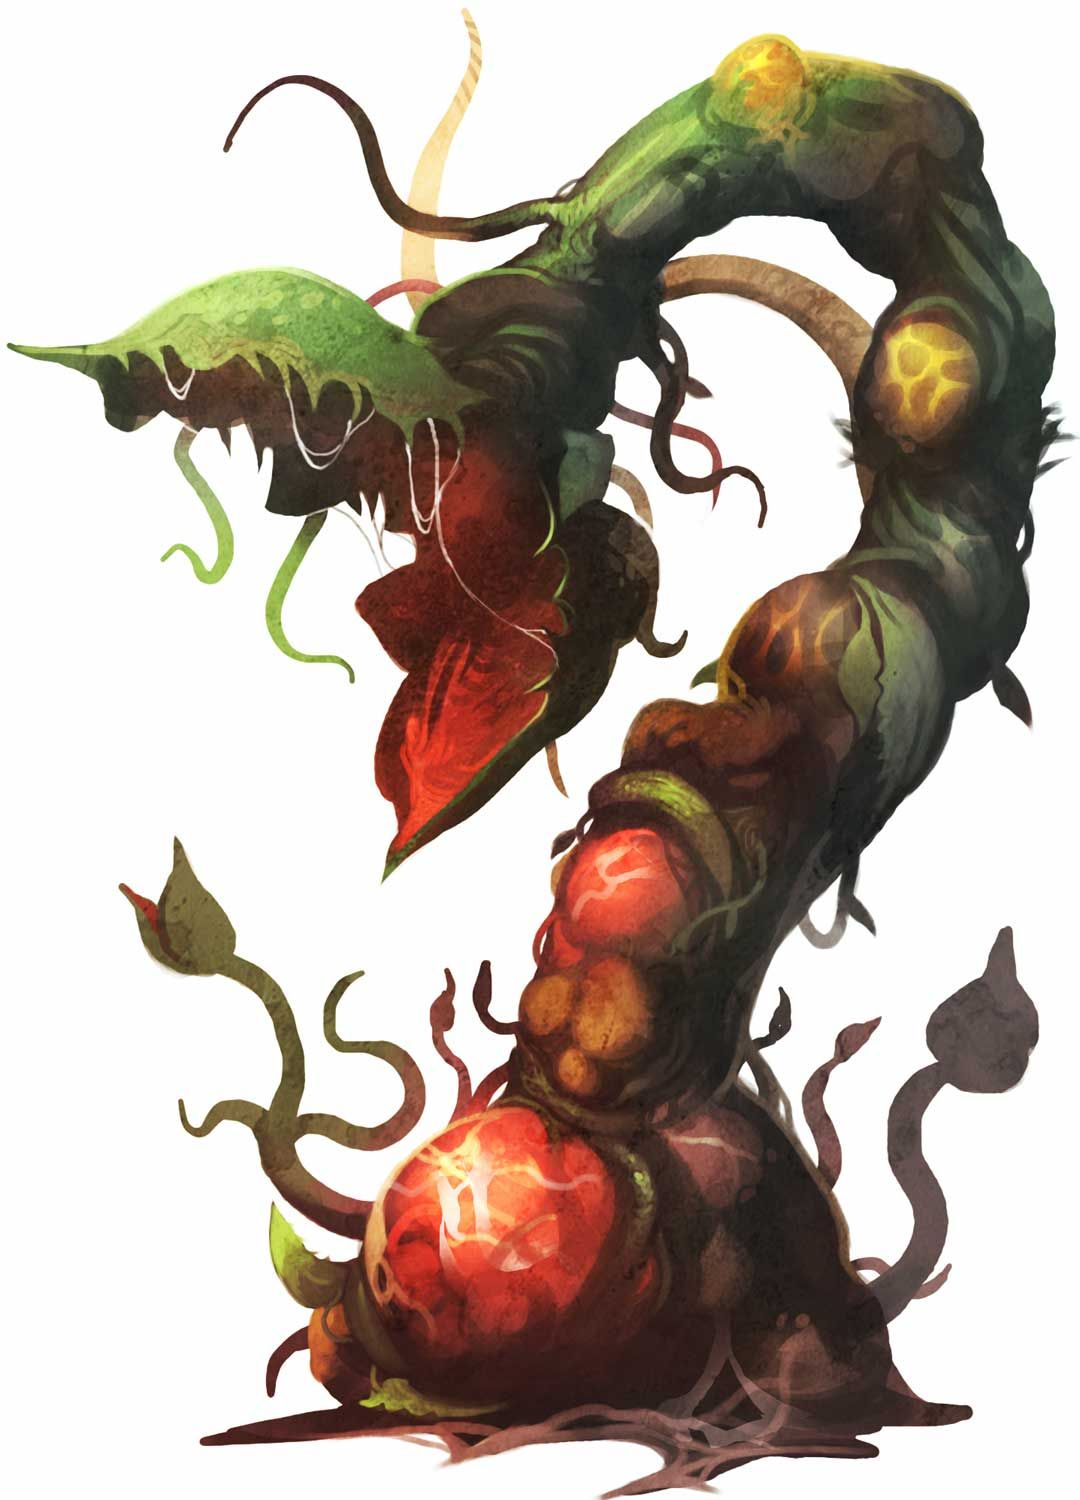 Strange New World: Random Alien Plant Generator | Wargaming